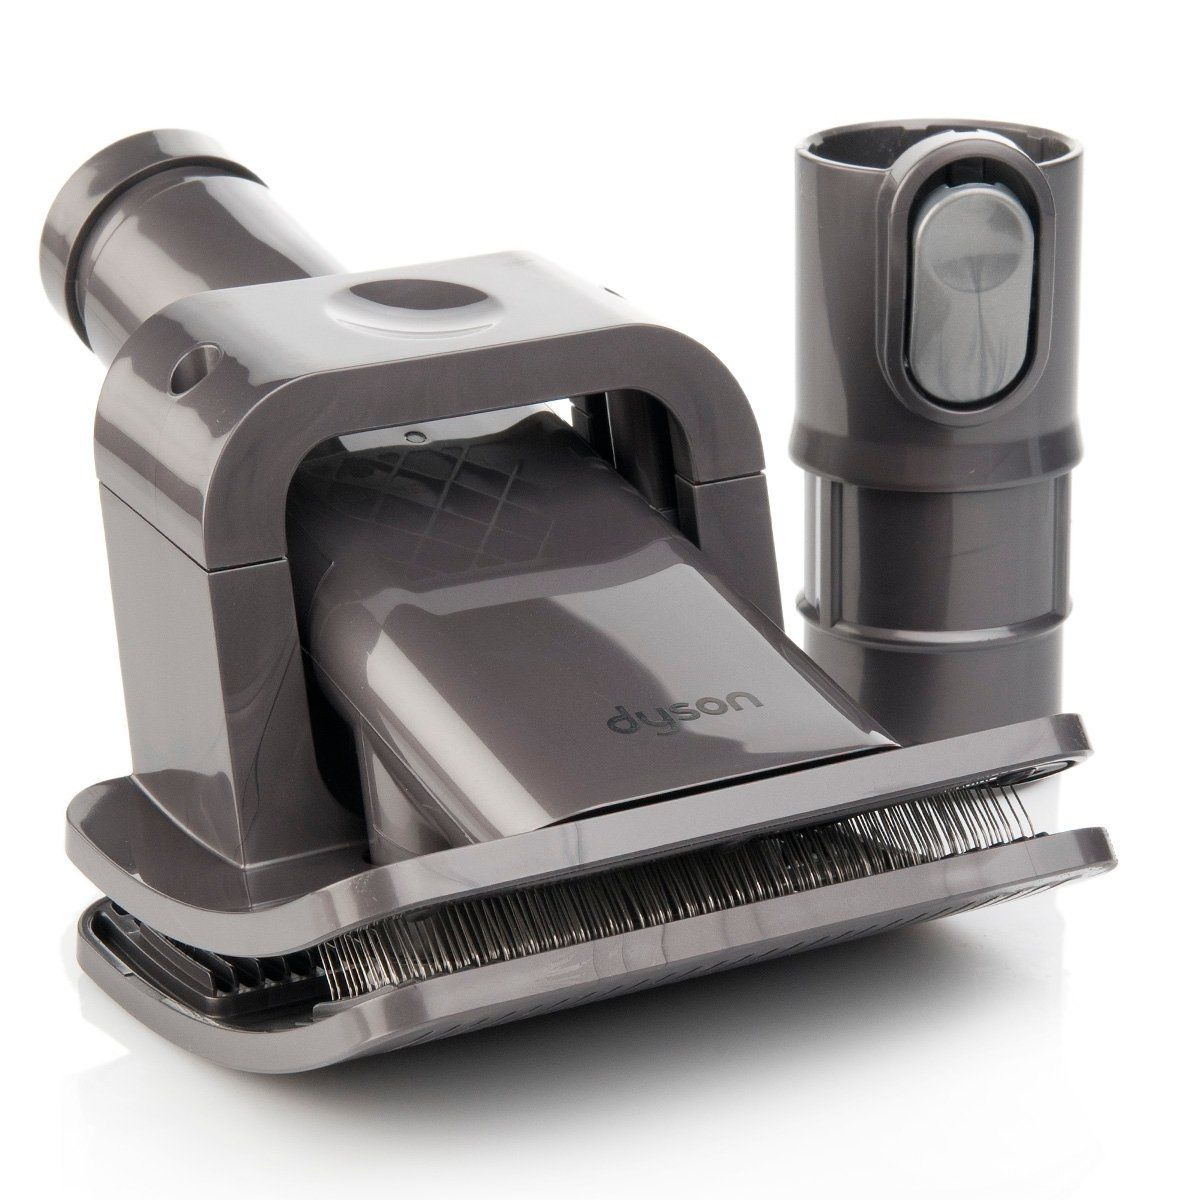 dyson dog grooming tool review